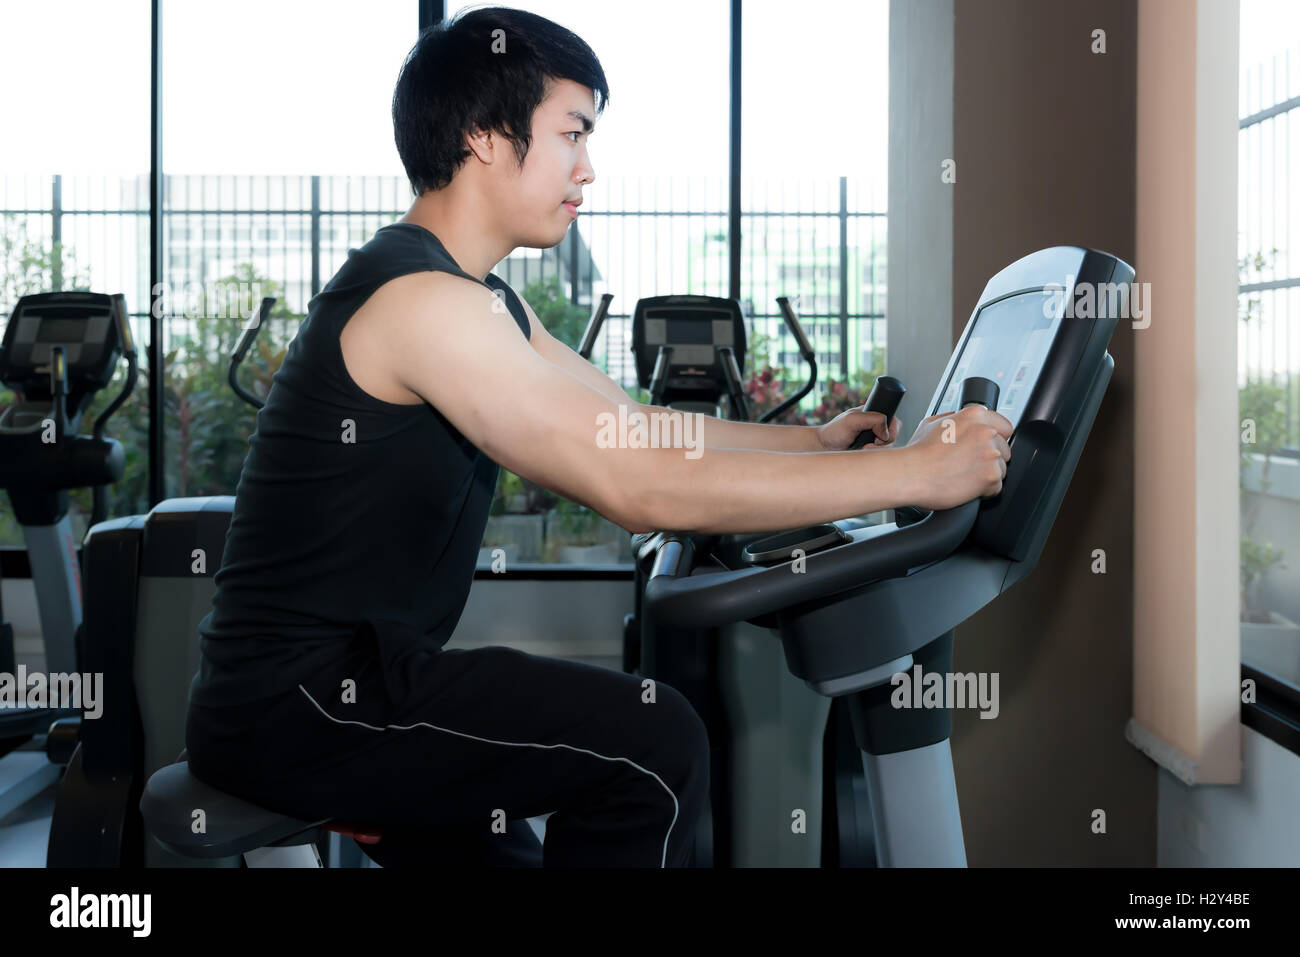 Man in the gym. Asian young man exercising his legs doing cardio training on bicycle in gym. - Stock Image